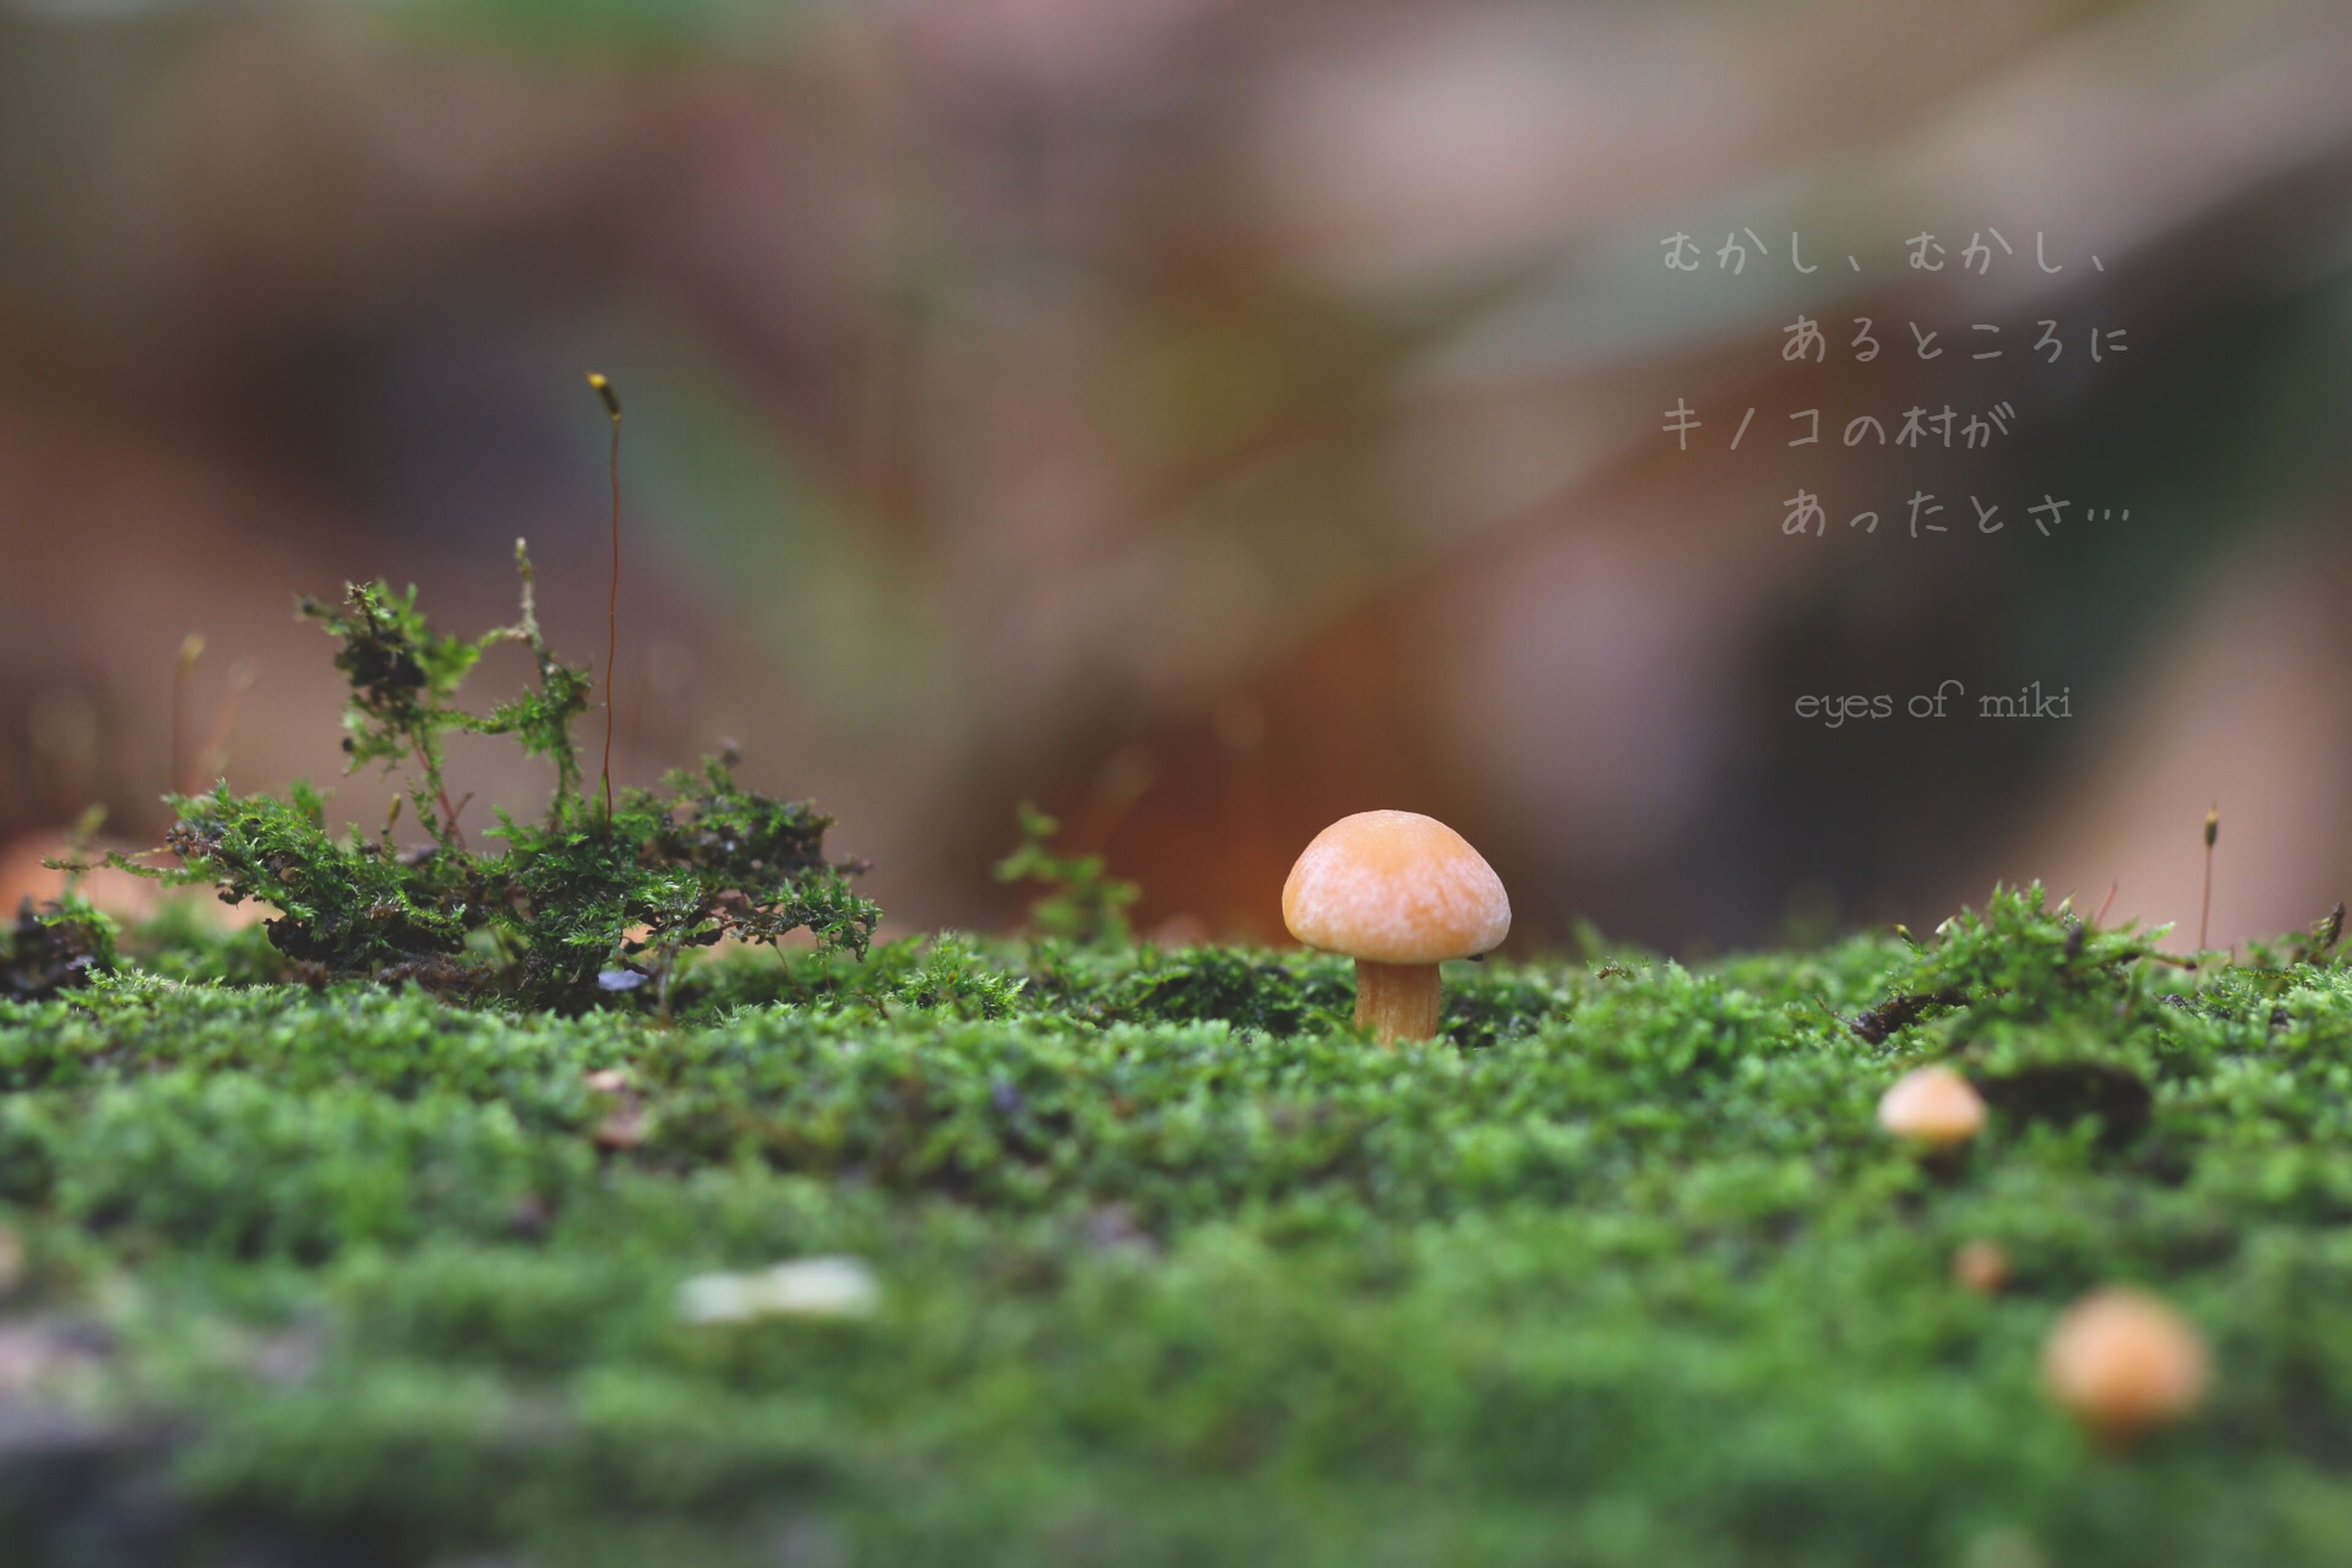 grass, growth, selective focus, mushroom, plant, field, green color, nature, close-up, focus on foreground, fungus, growing, toadstool, beauty in nature, grassy, outdoors, tranquility, no people, day, forest